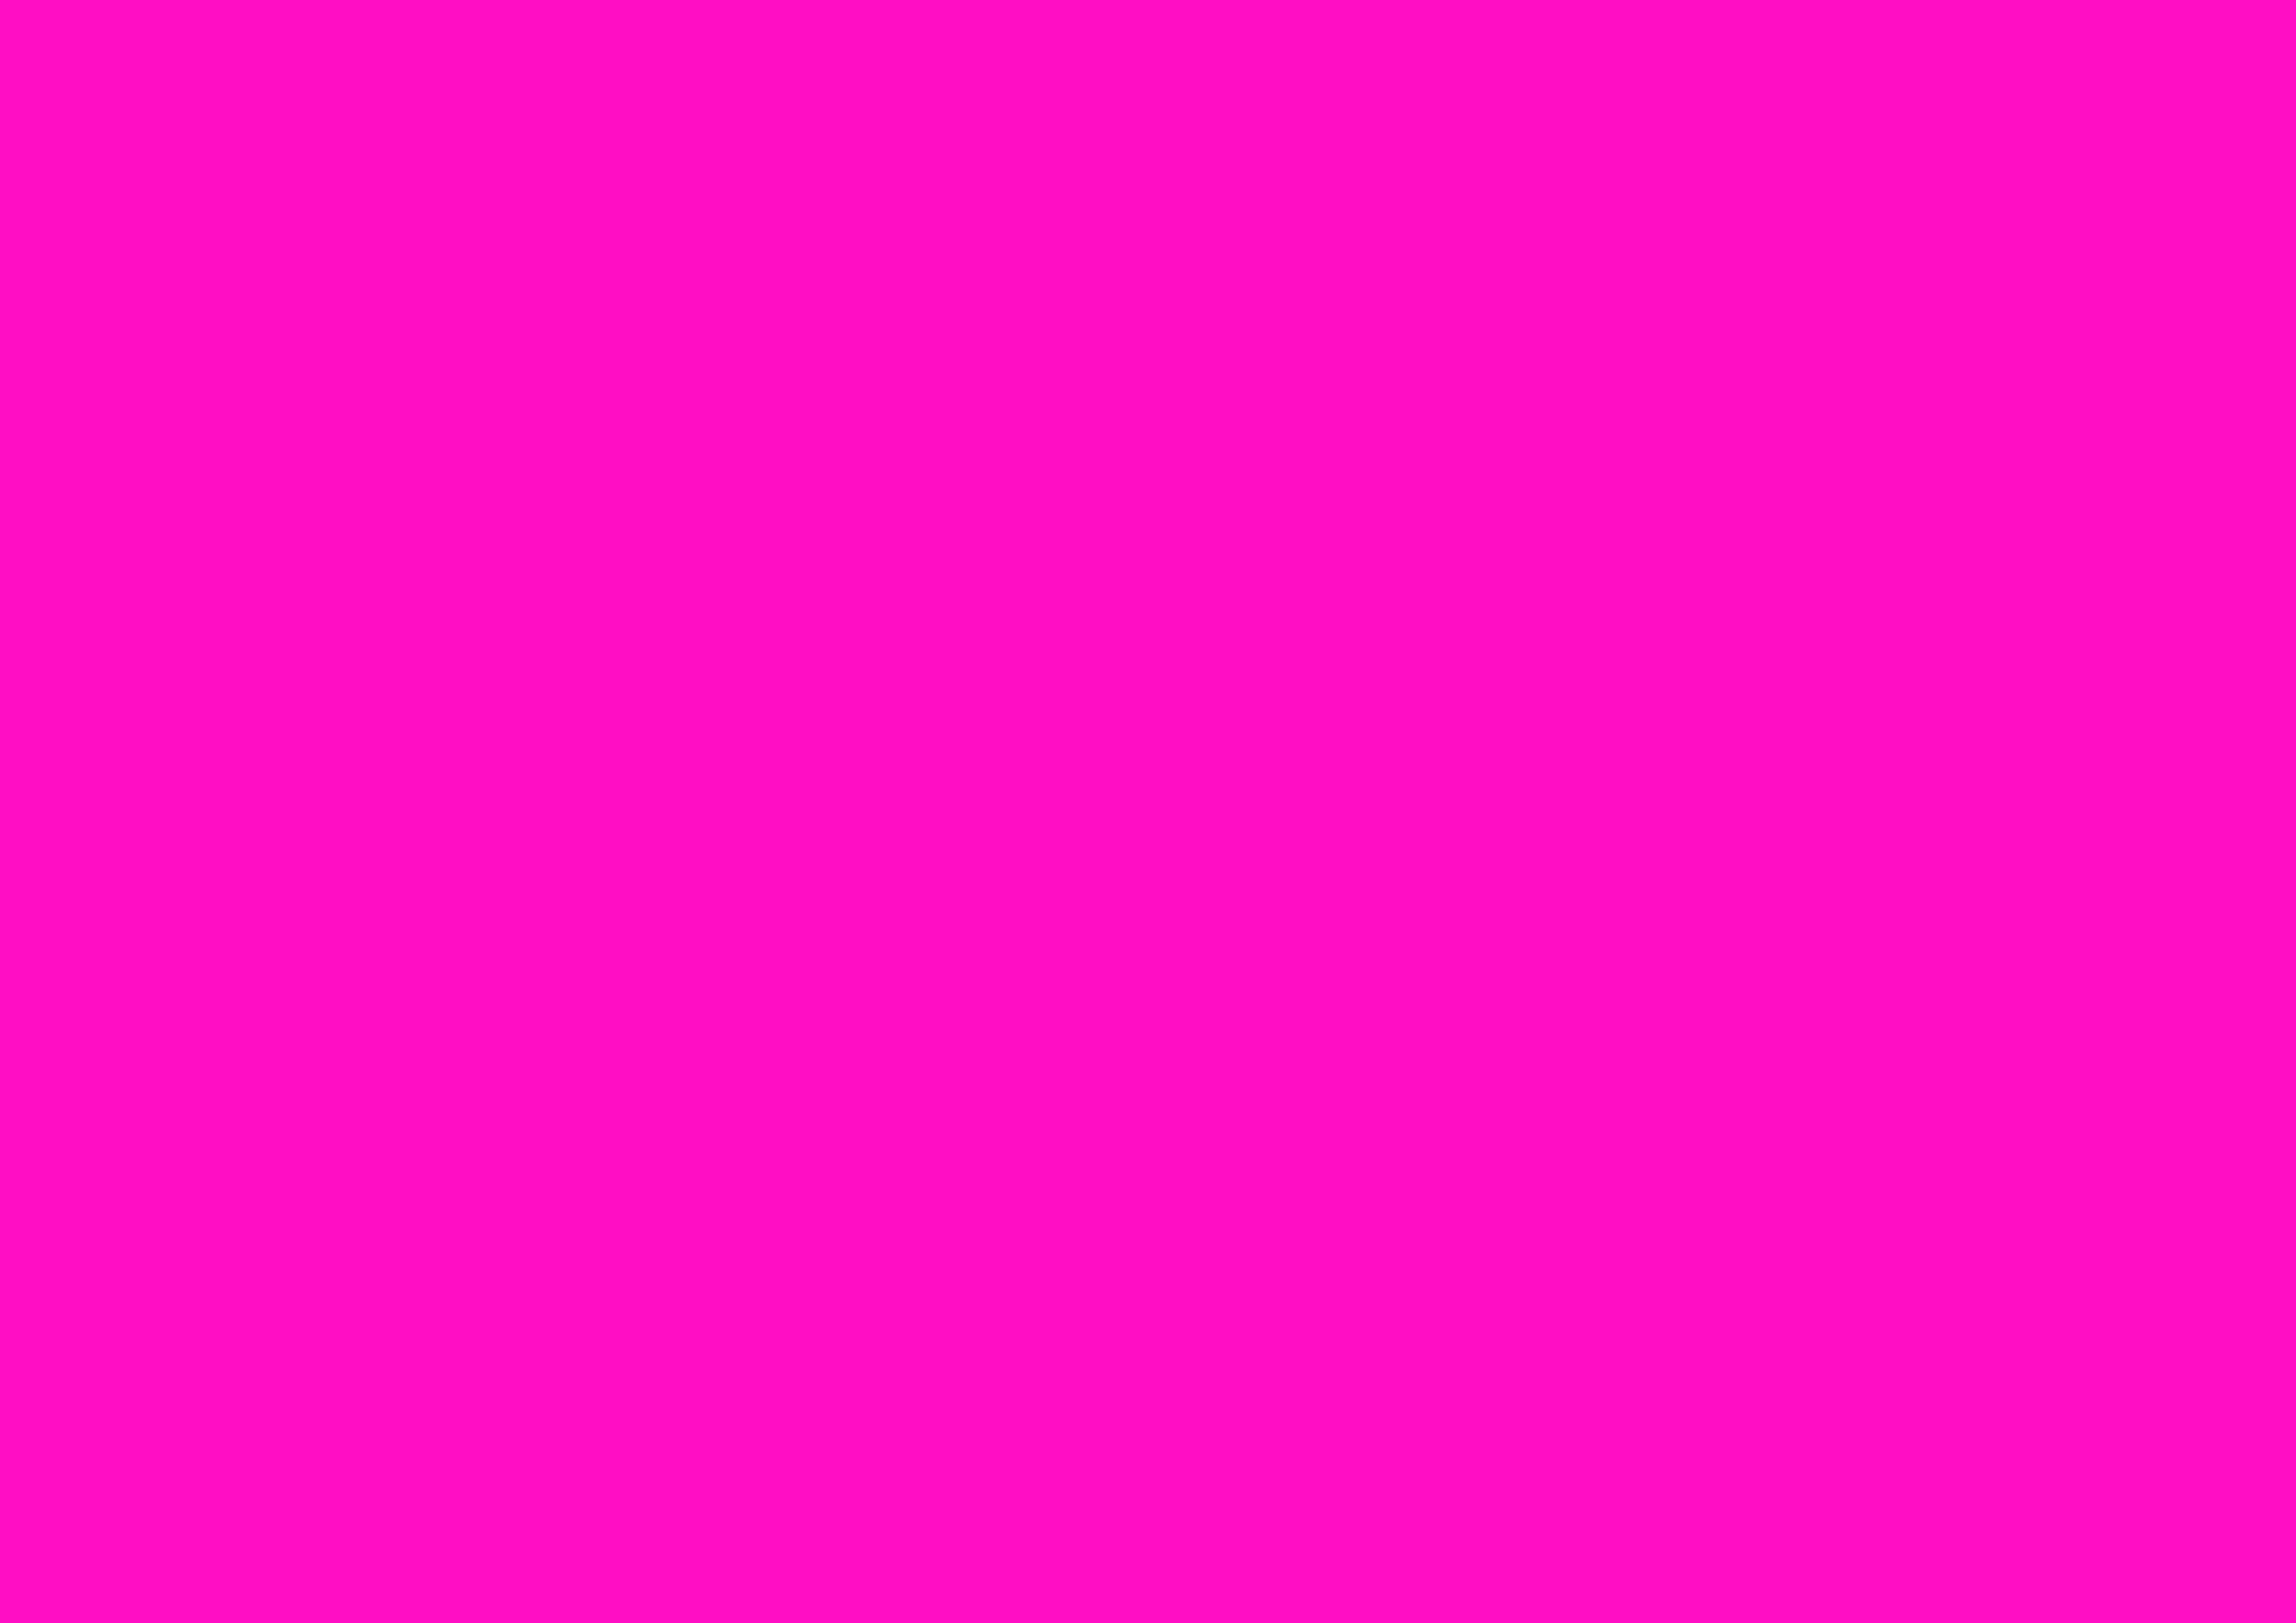 3508x2480 Shocking Pink Solid Color Background